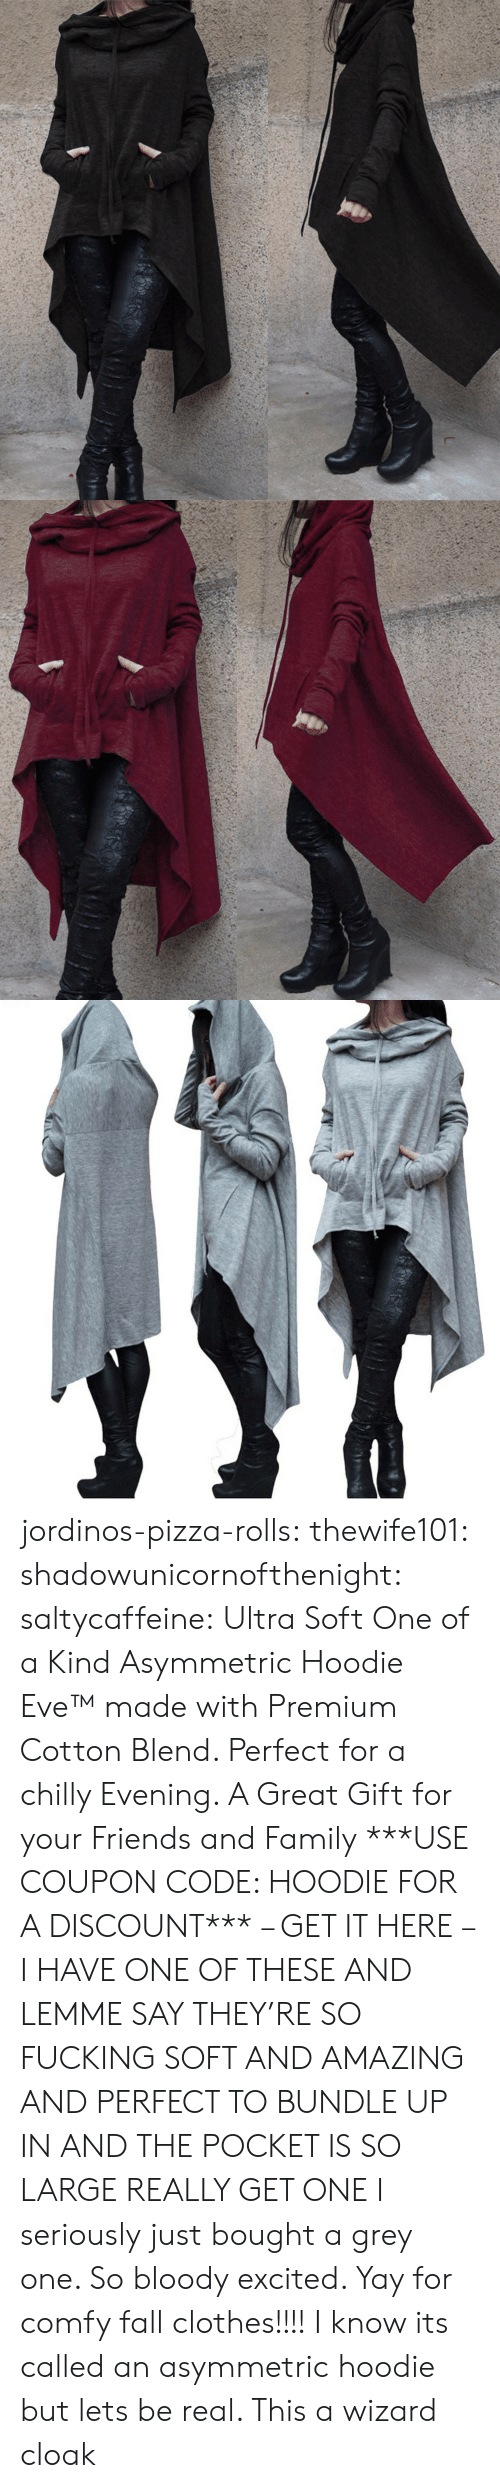 Clothes, Fall, and Family: jordinos-pizza-rolls:  thewife101:  shadowunicornofthenight:  saltycaffeine:  Ultra Soft One of a Kind Asymmetric Hoodie Eve™made with Premium Cotton Blend. Perfect for a chilly Evening. A Great Gift for your Friends and Family ***USE COUPON CODE: HOODIE FOR A DISCOUNT*** – GET IT HERE –   I HAVE ONE OF THESE AND LEMME SAY THEY'RE SO FUCKING SOFT AND AMAZING AND PERFECT TO BUNDLE UP IN AND THE POCKET IS SO LARGE REALLY GET ONE   I seriously just bought a grey one. So bloody excited. Yay for comfy fall clothes!!!!    I know its called an asymmetric hoodie but lets be real. This a wizard cloak